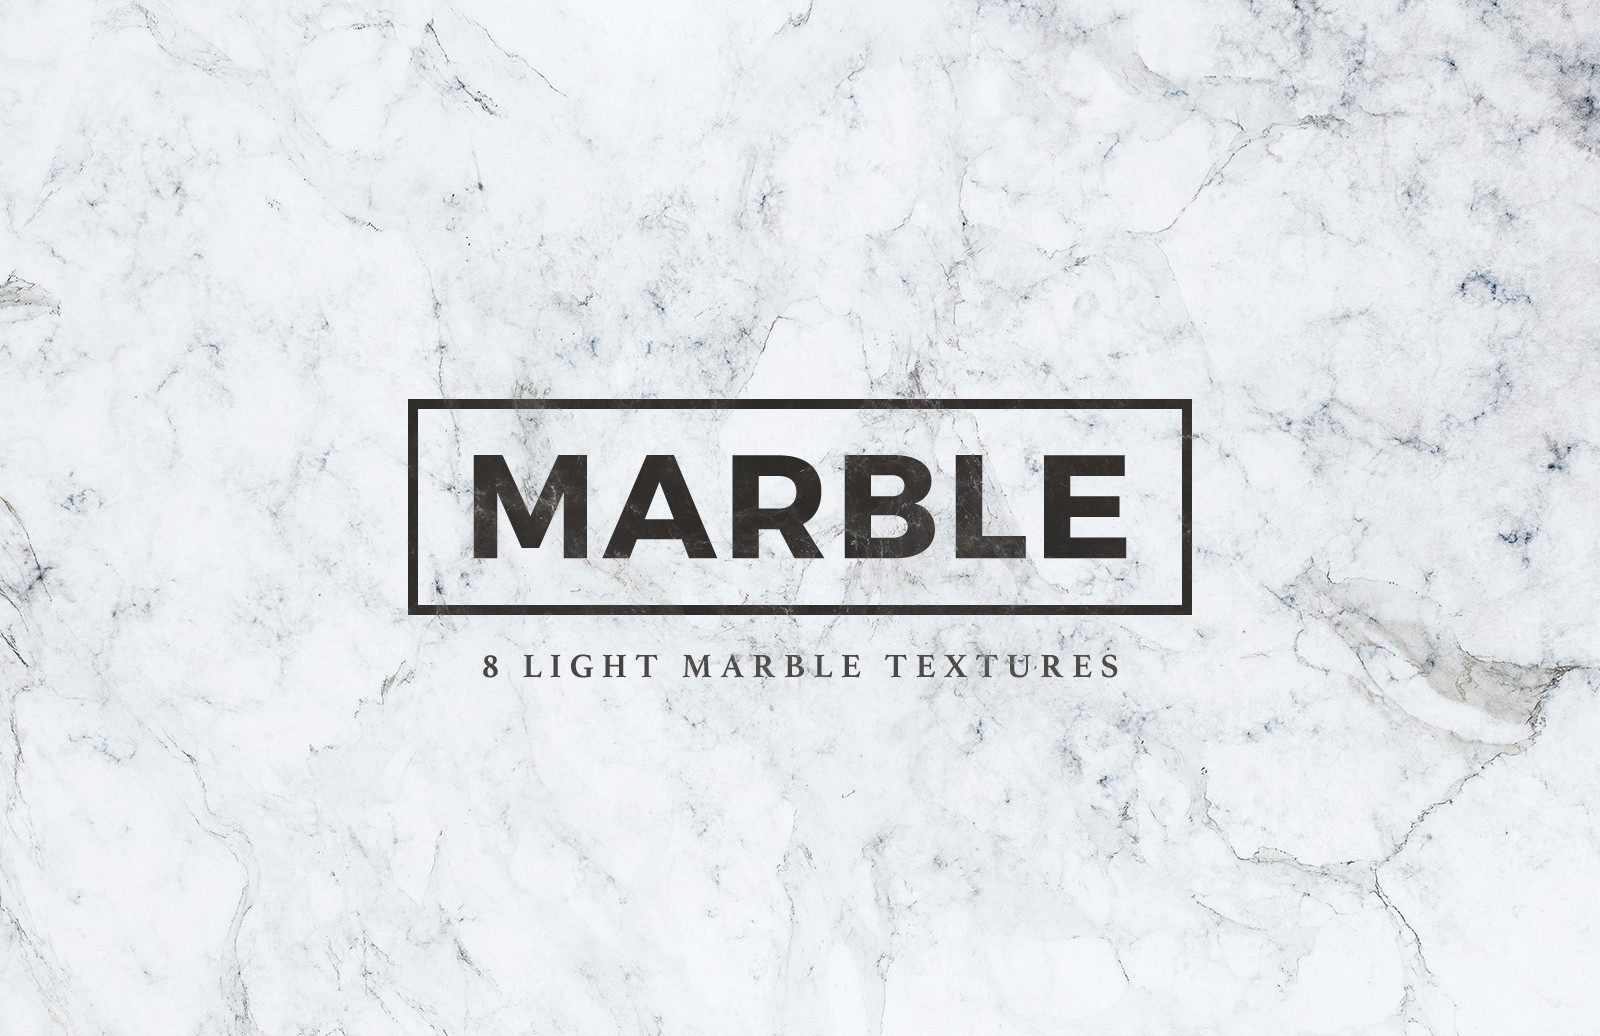 Light Marble Textures